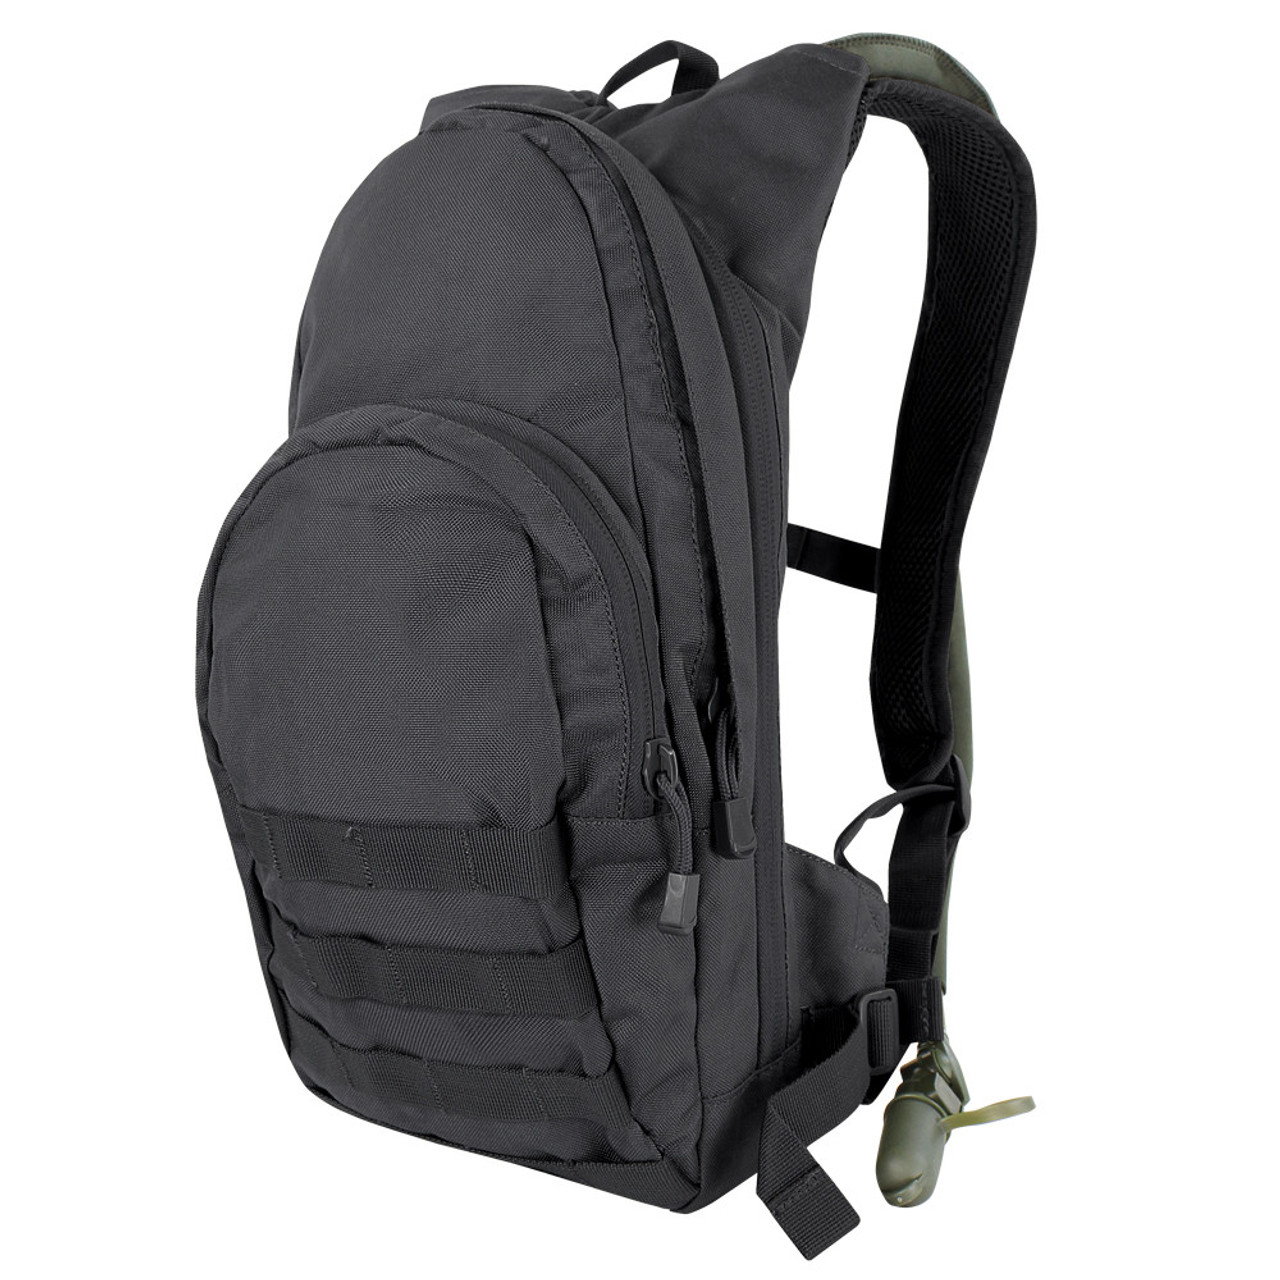 Condor Hydration Pack